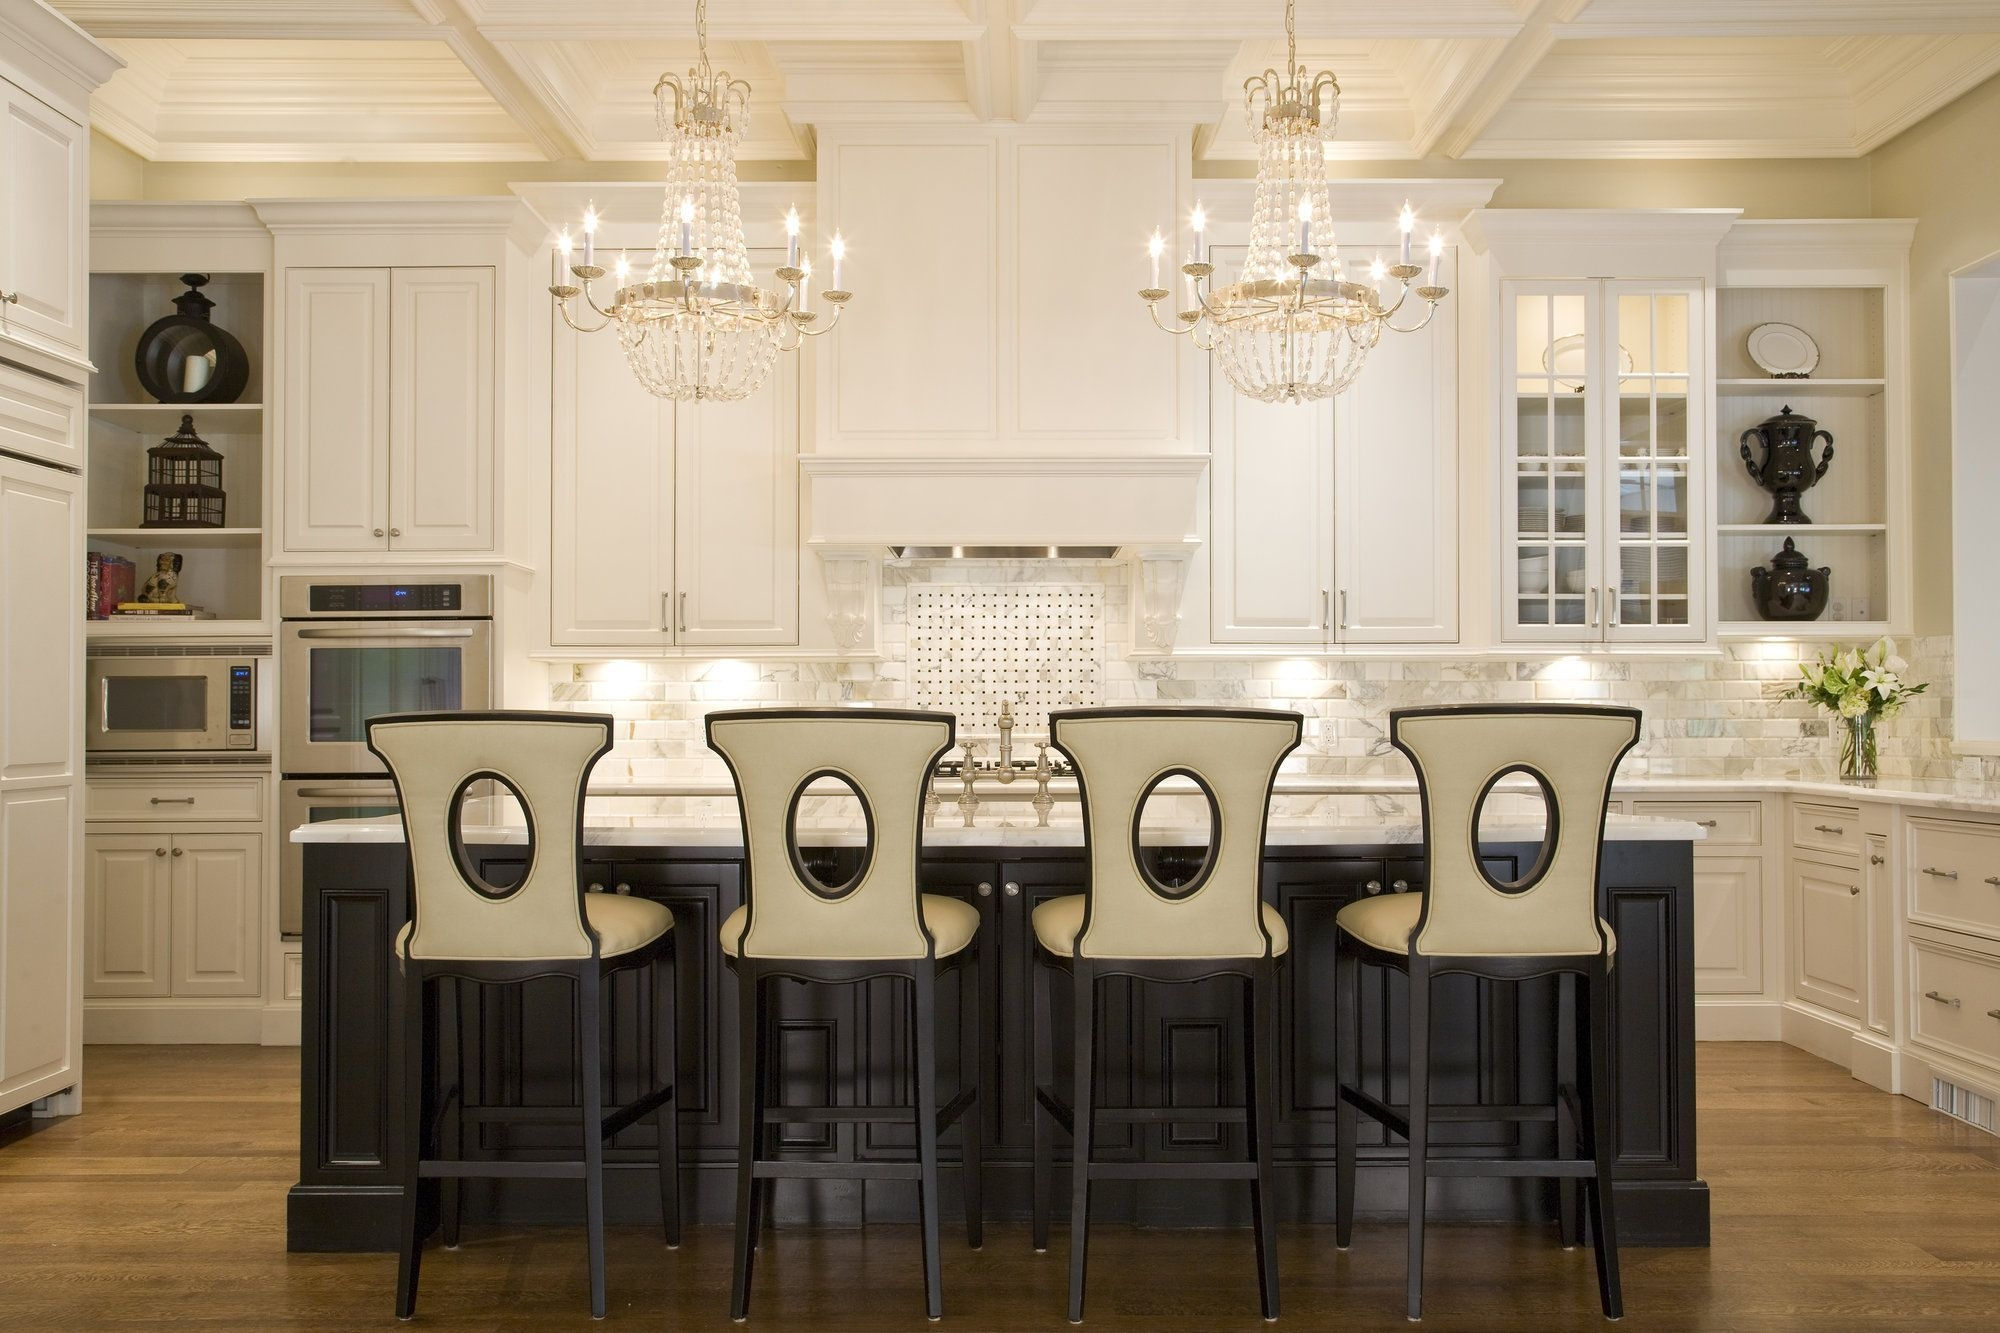 Oval bar stools 1